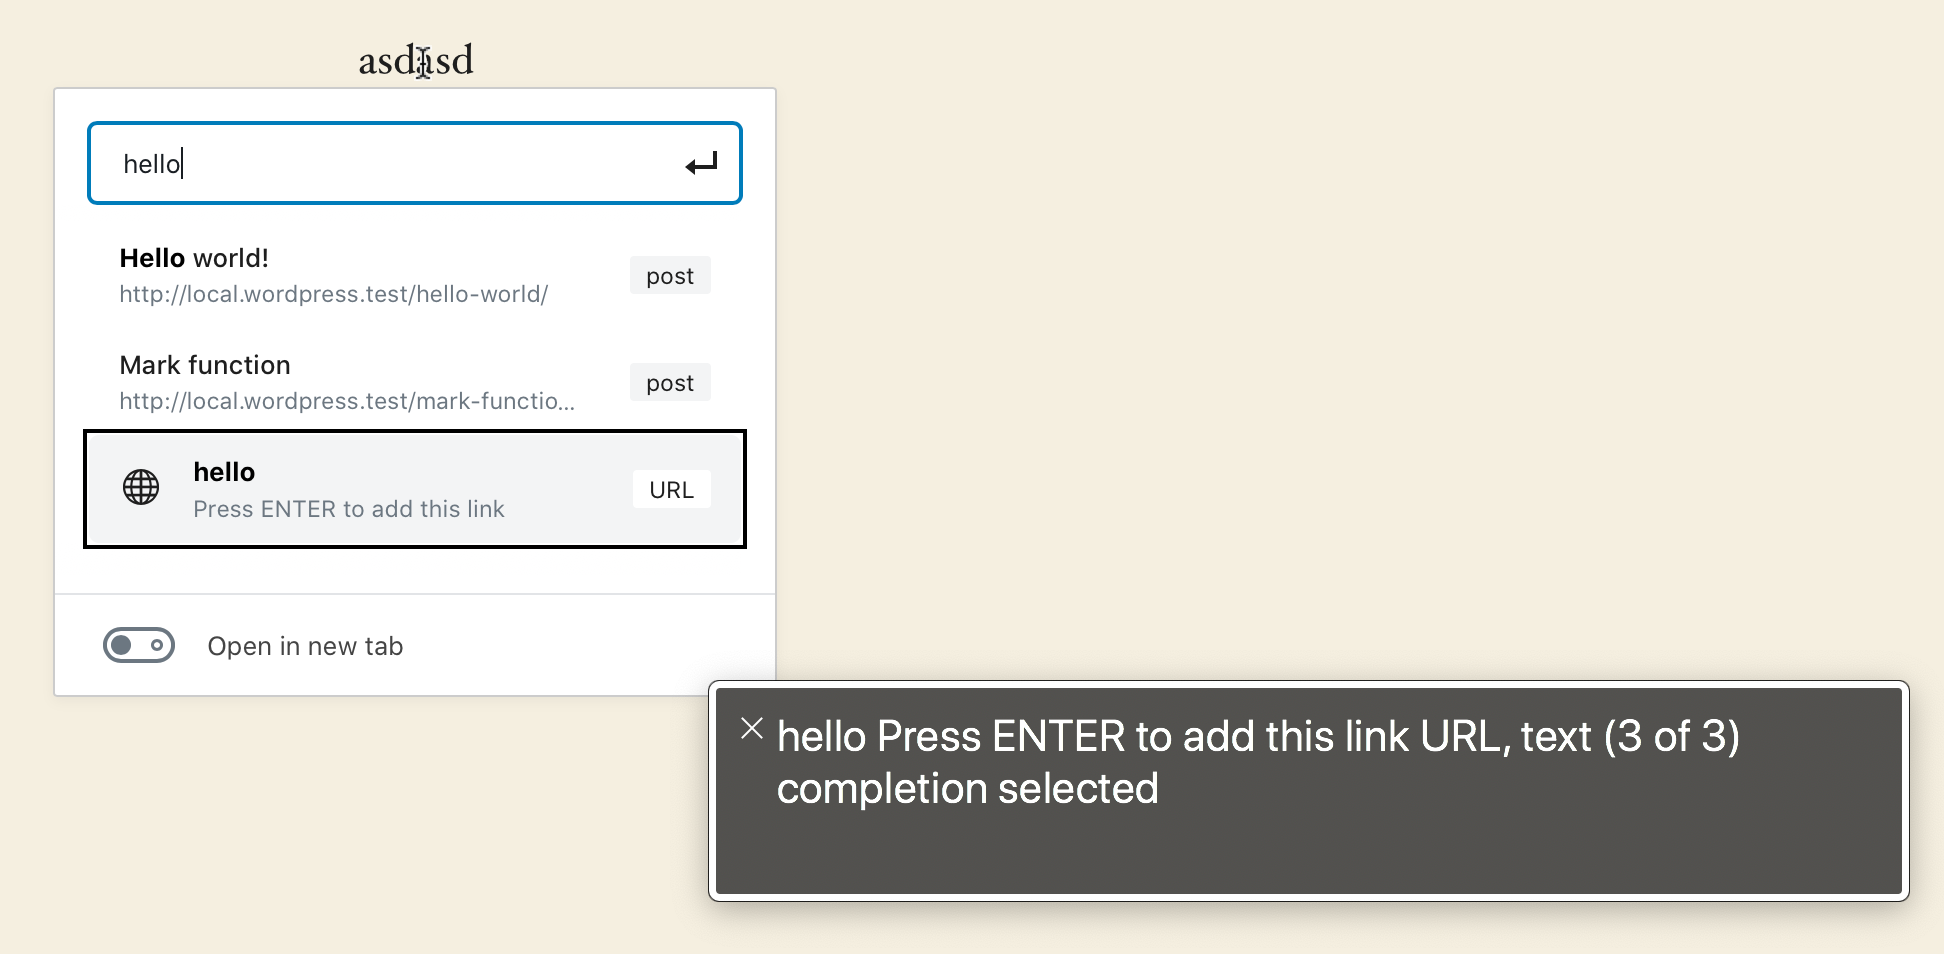 The list of link options allows to add a URL link even if what is added is not a URL